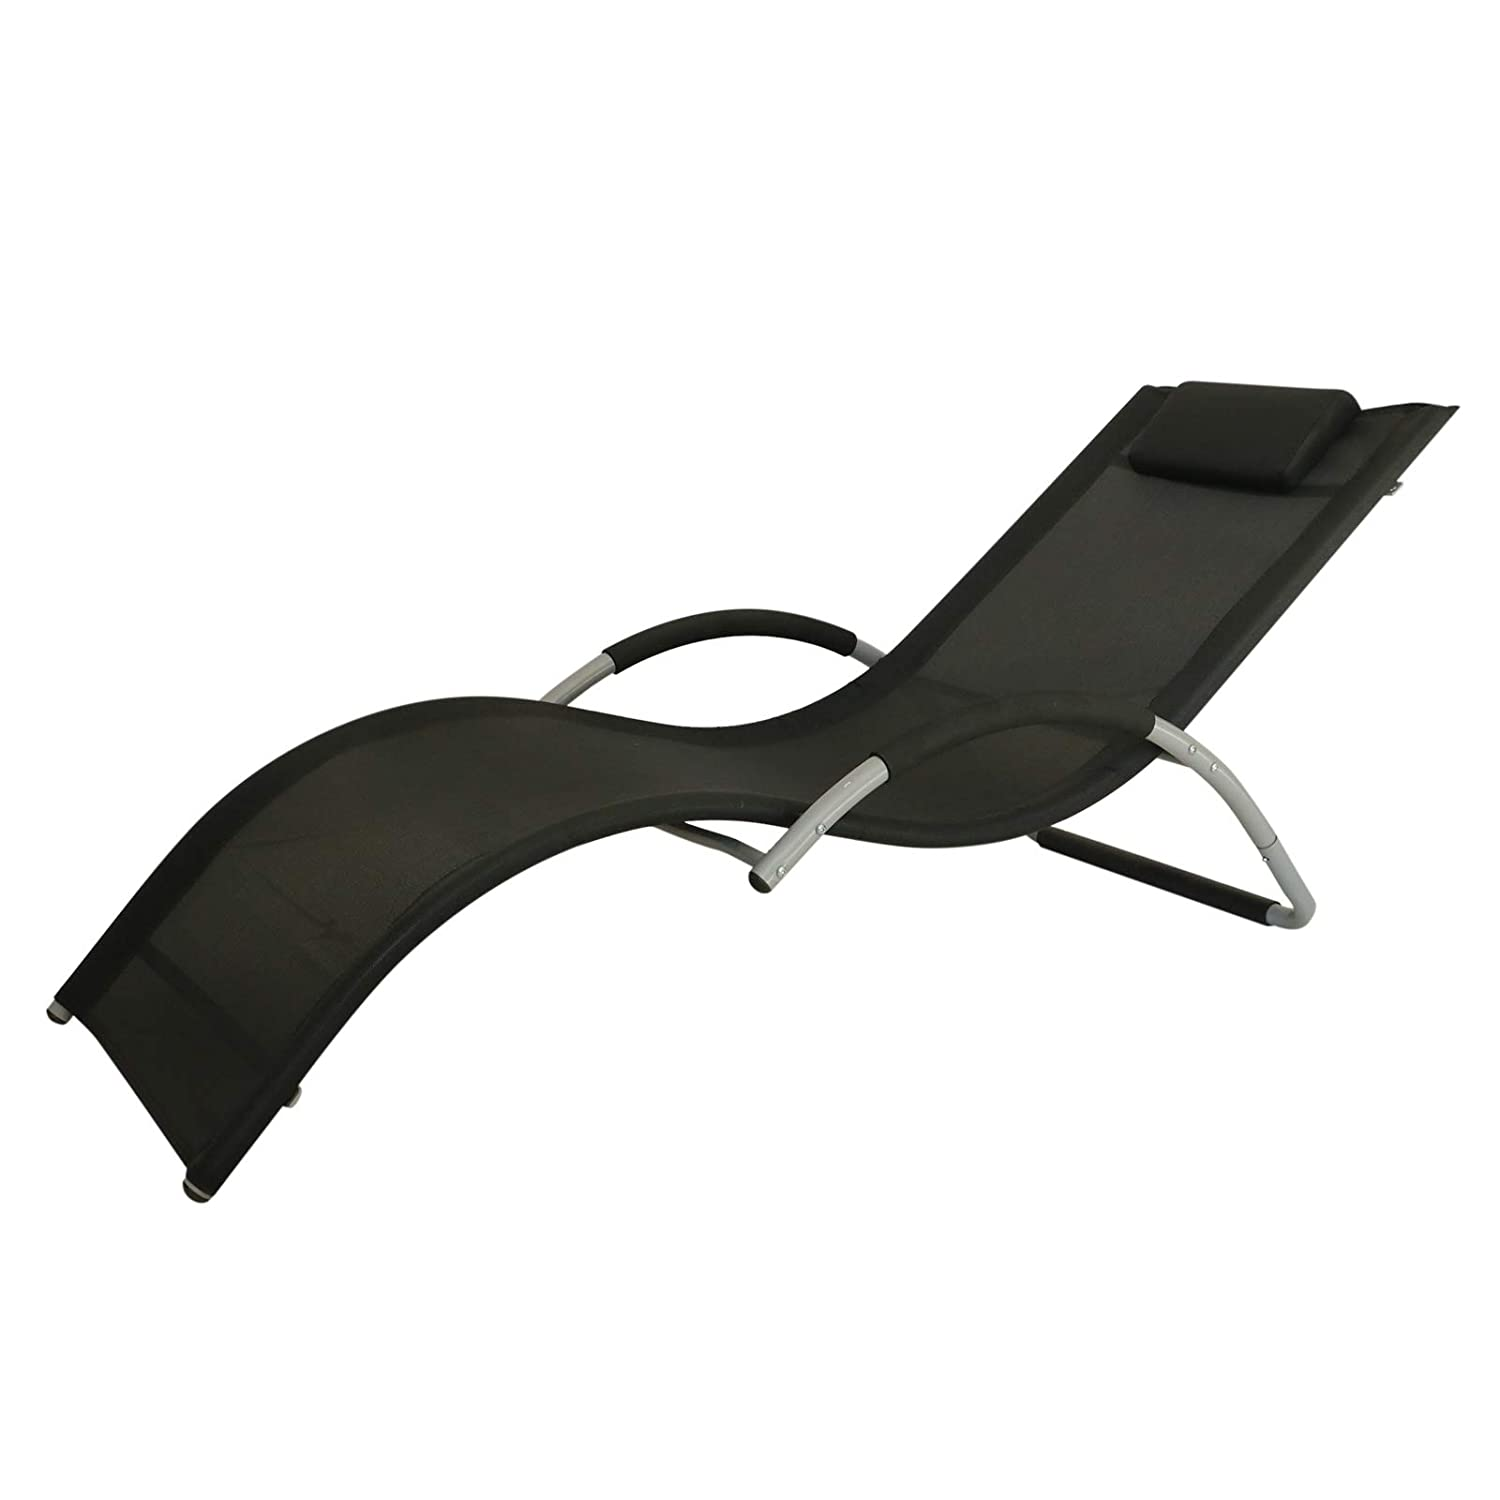 Amazon.com: Outsunny Texteline - Tumbona reclinable para ...